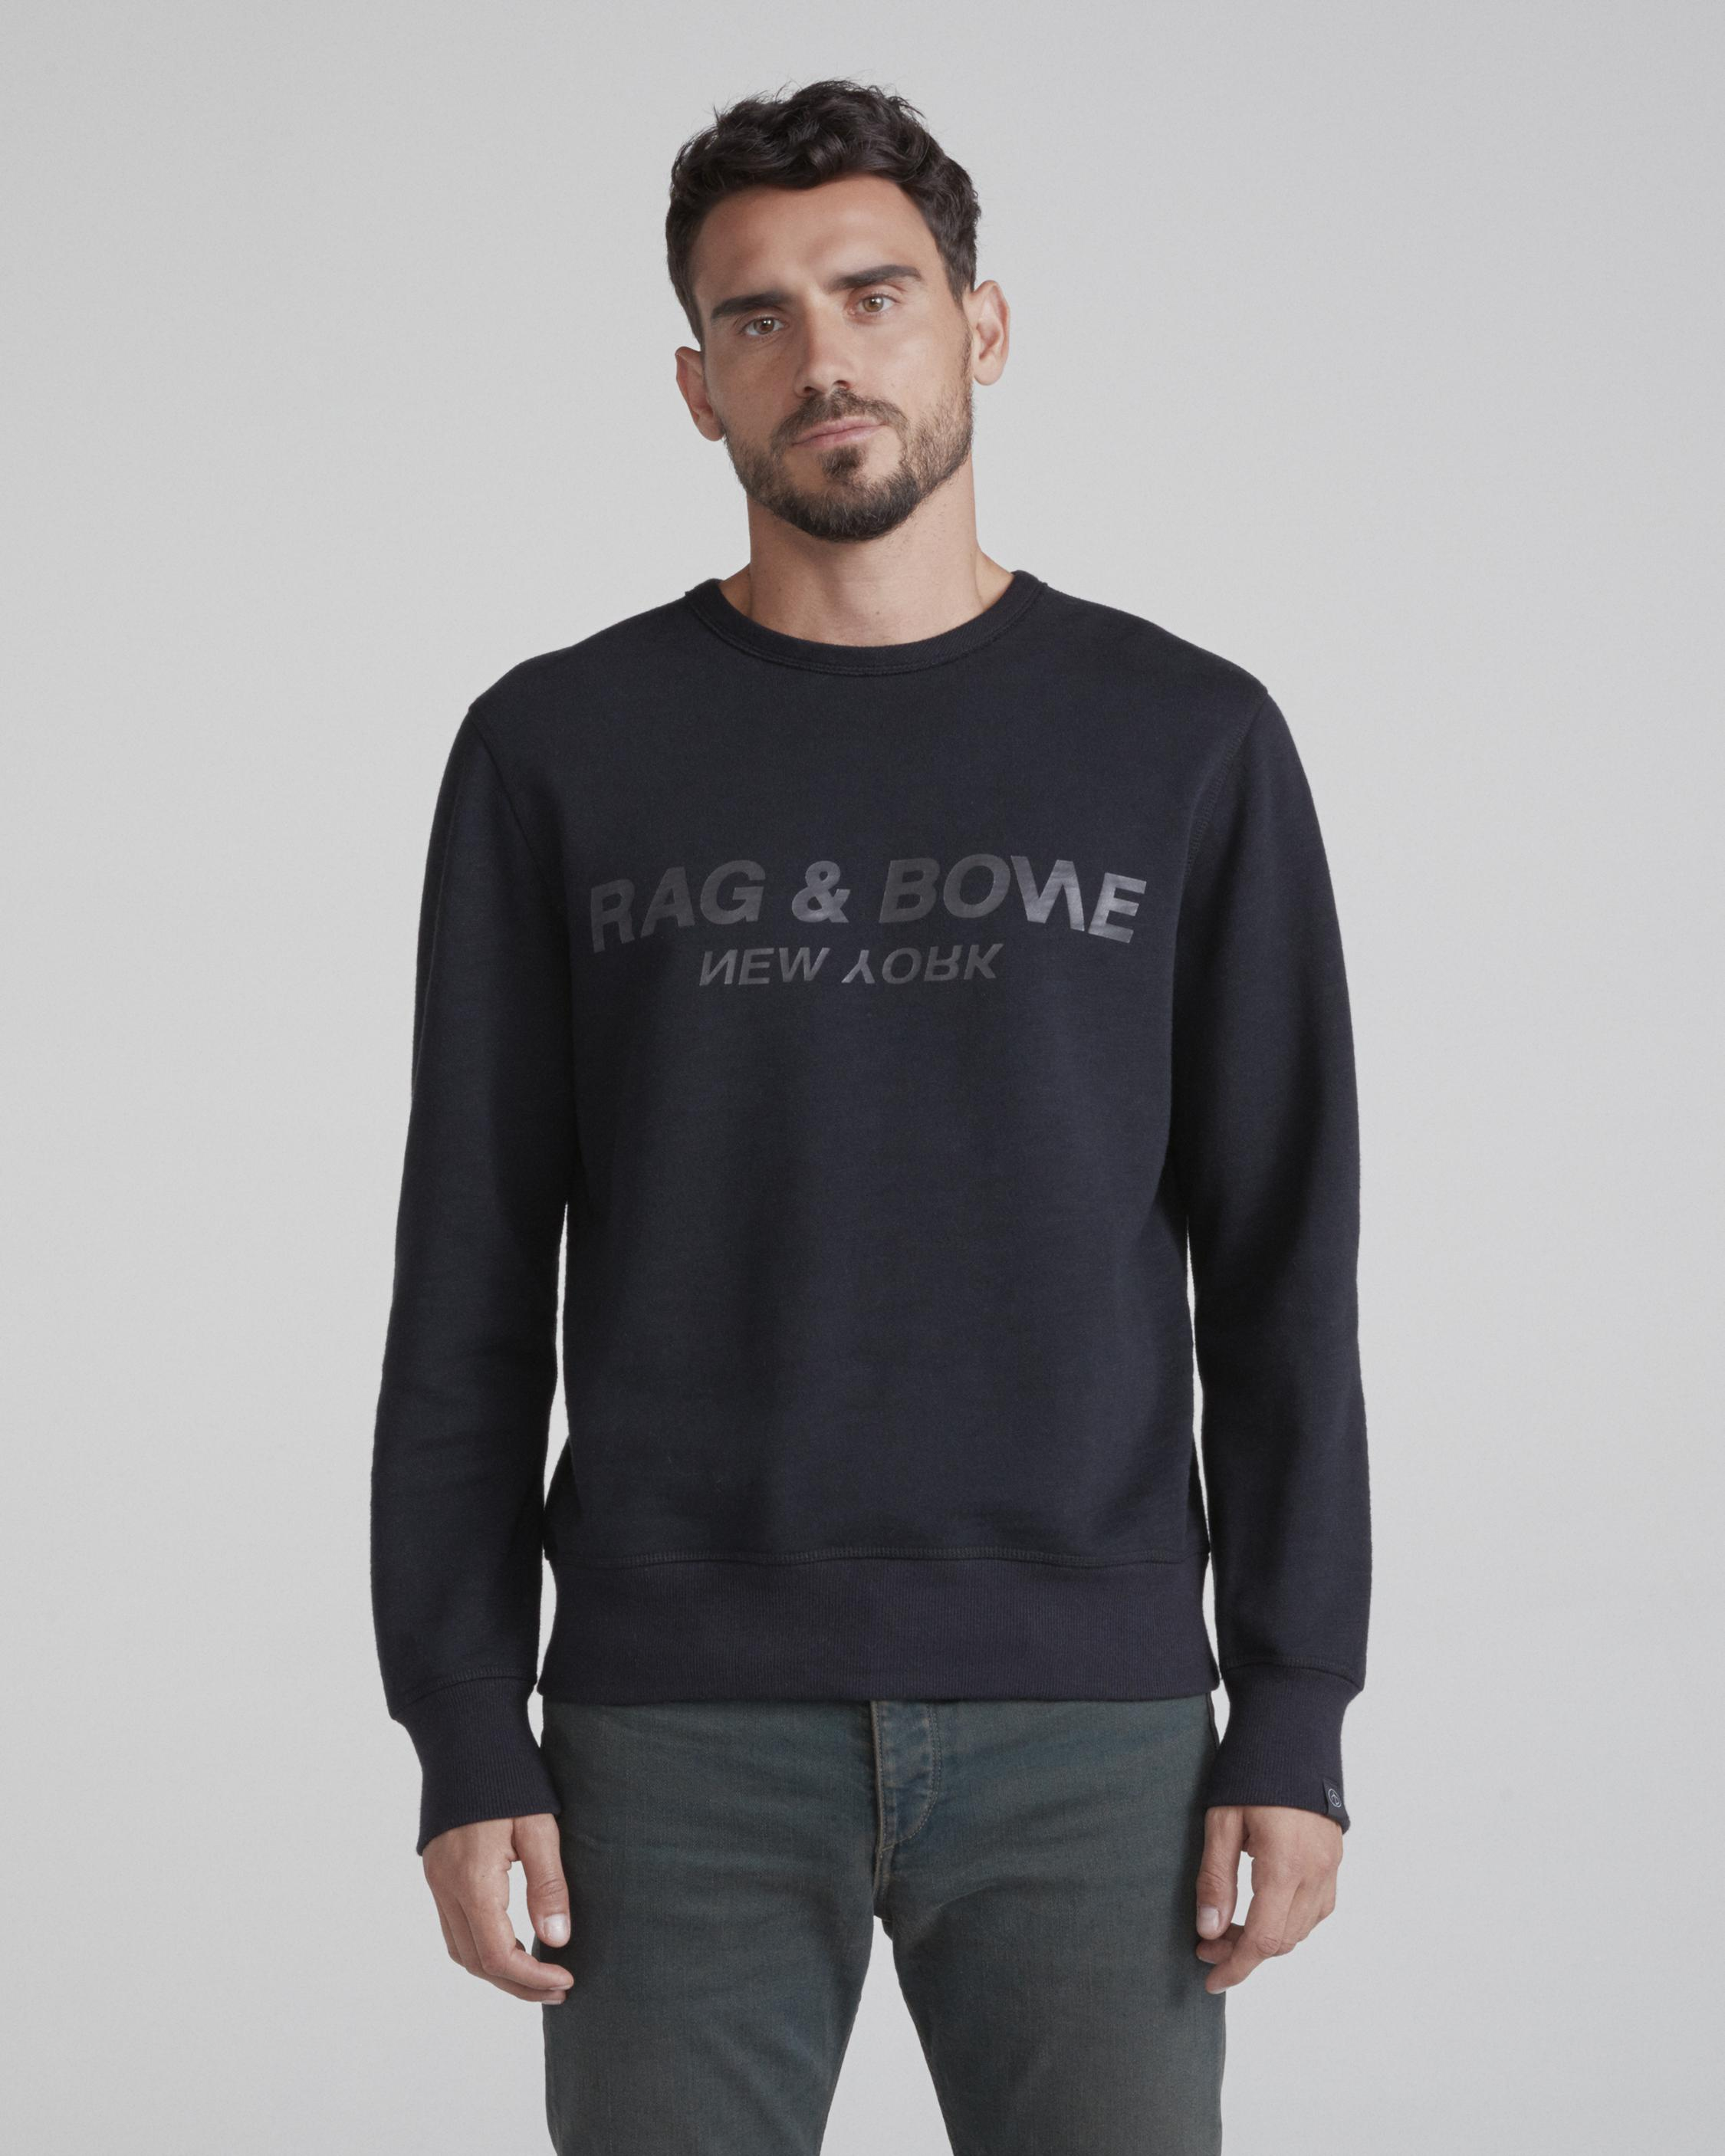 RAG & BONE UPSIDE DOWN SWEATSHIRT